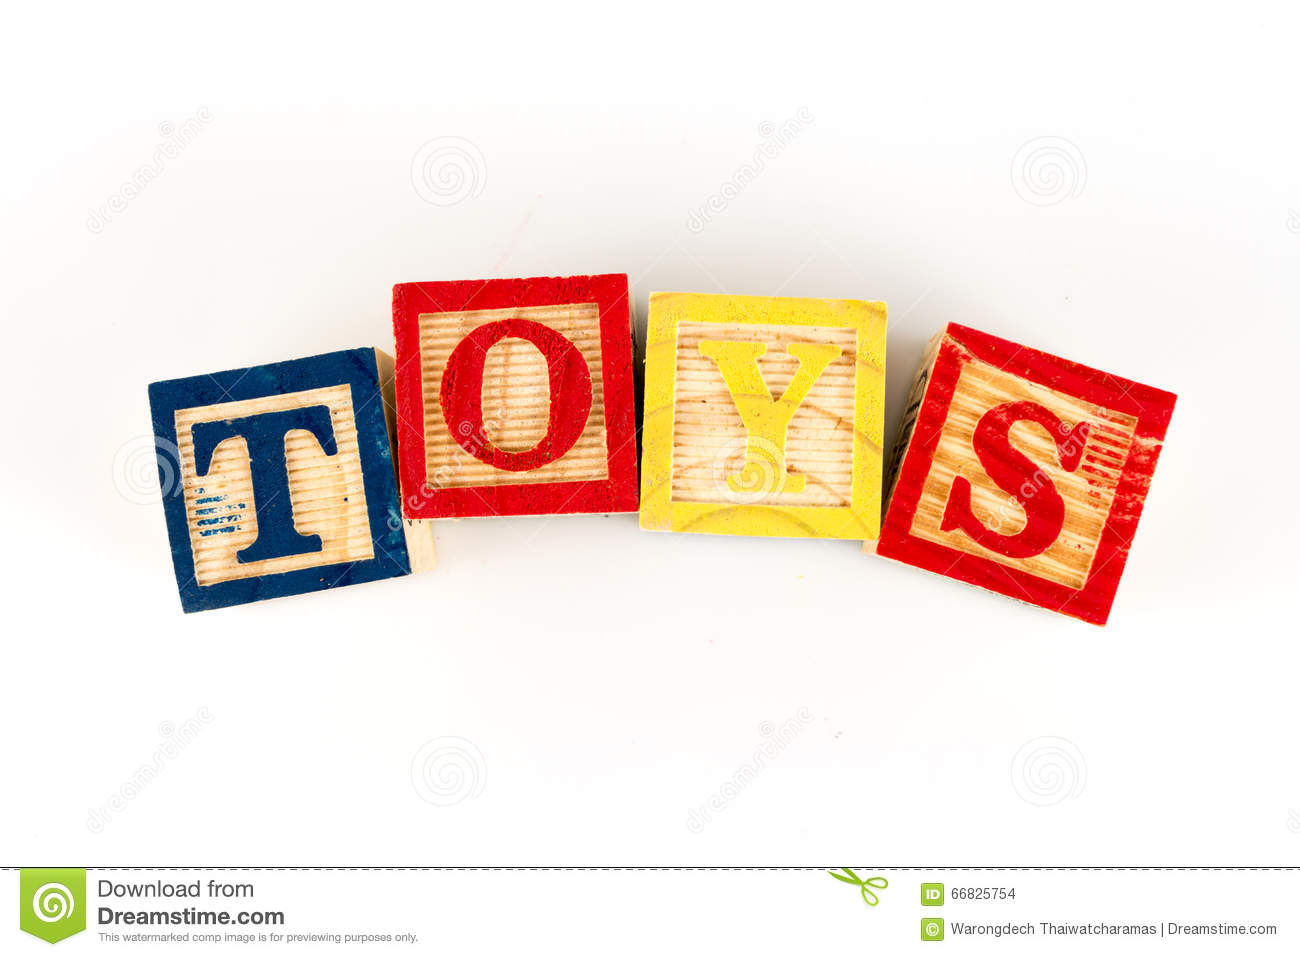 The Letters TOYS Spelling Toys With Wooden Blocks Stock Photo